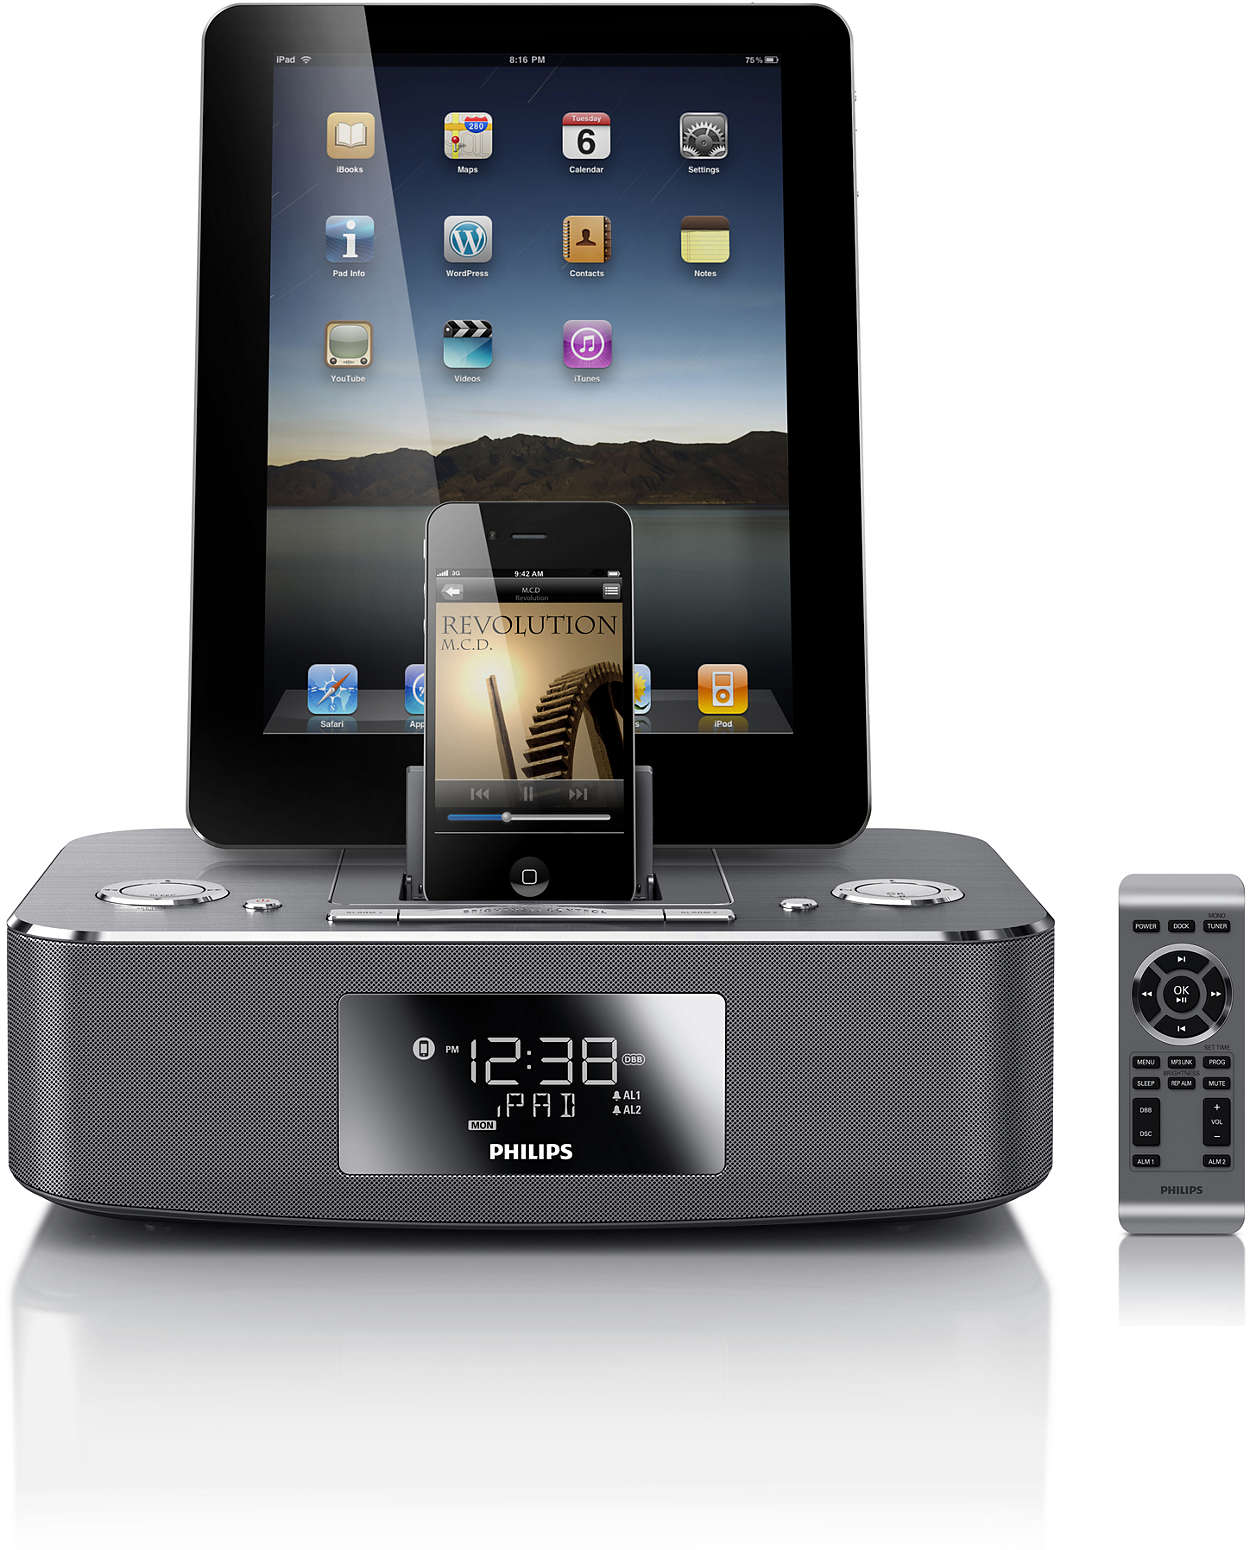 docking station for ipod iphone ipad dc390 37 philips. Black Bedroom Furniture Sets. Home Design Ideas